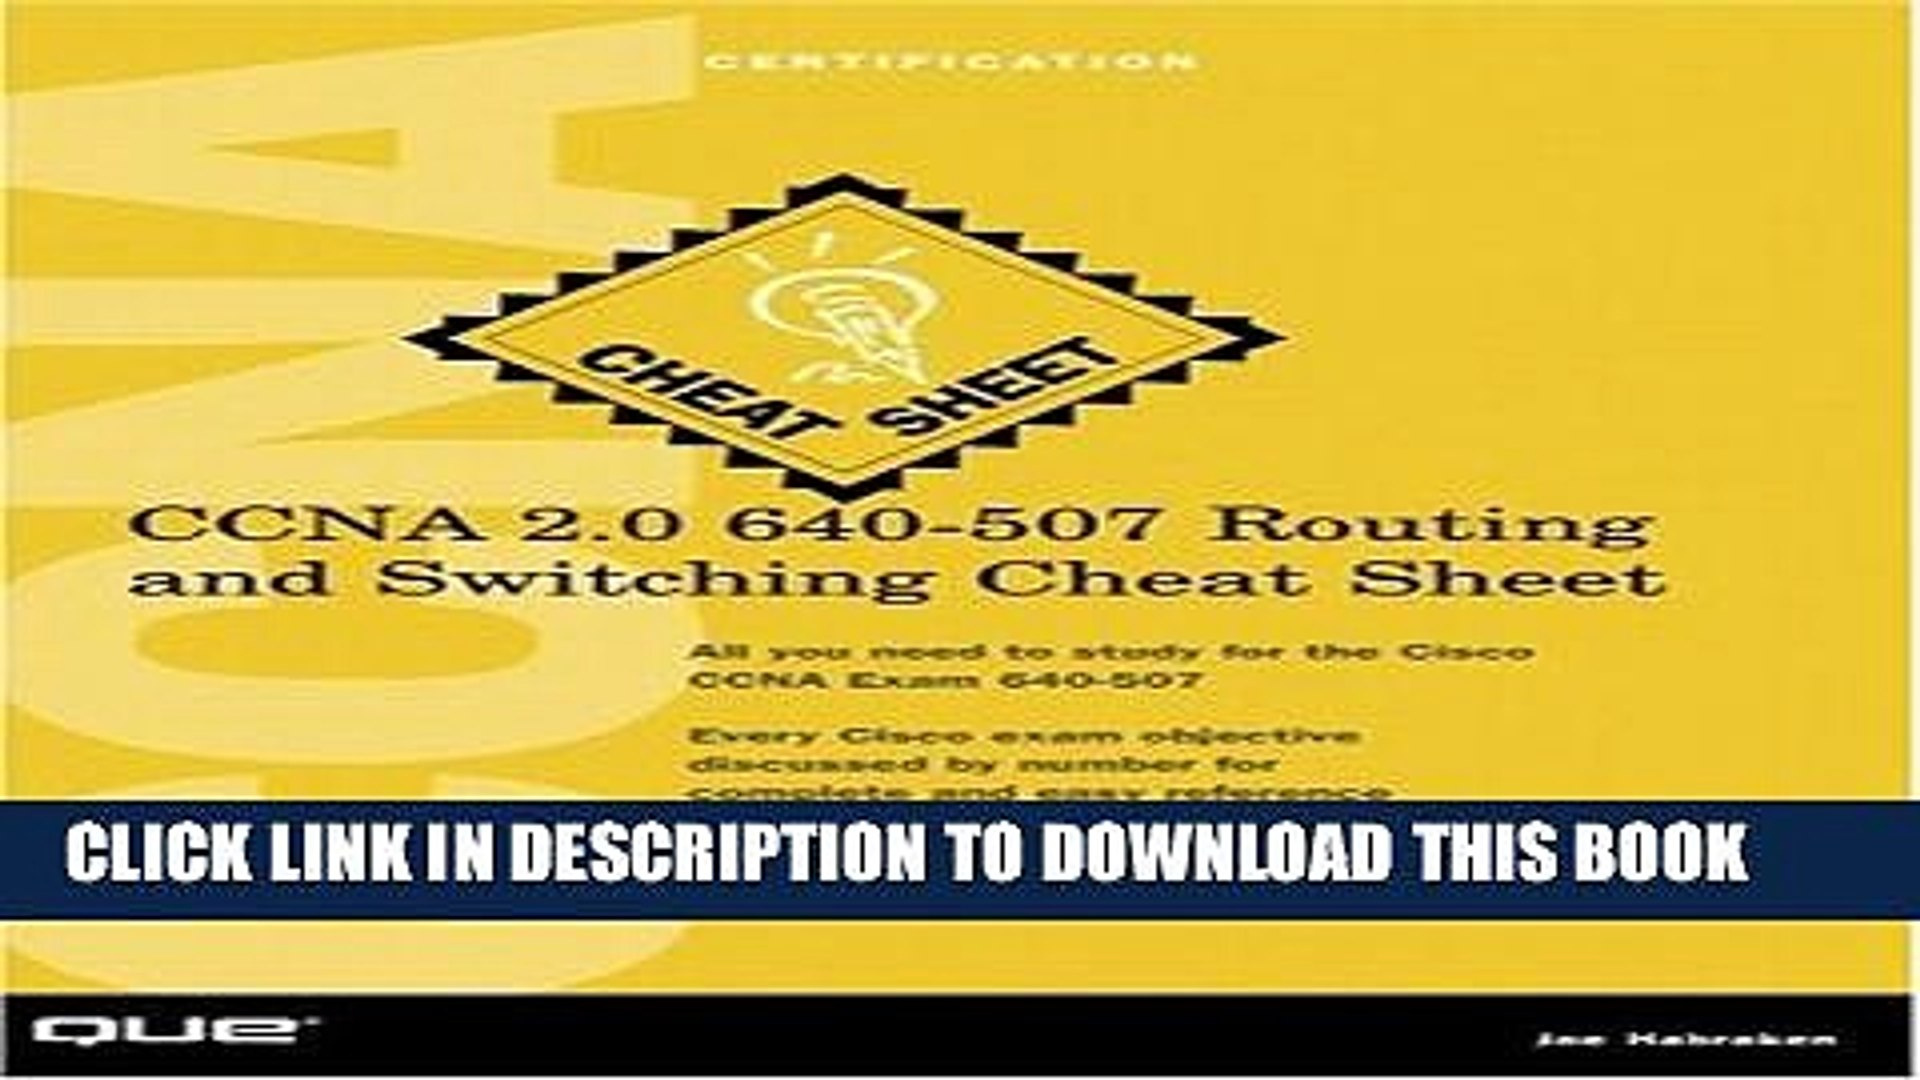 [PDF] CCNA 2 0 640-507 Routing and Switching Cheat Sheet Popular Online